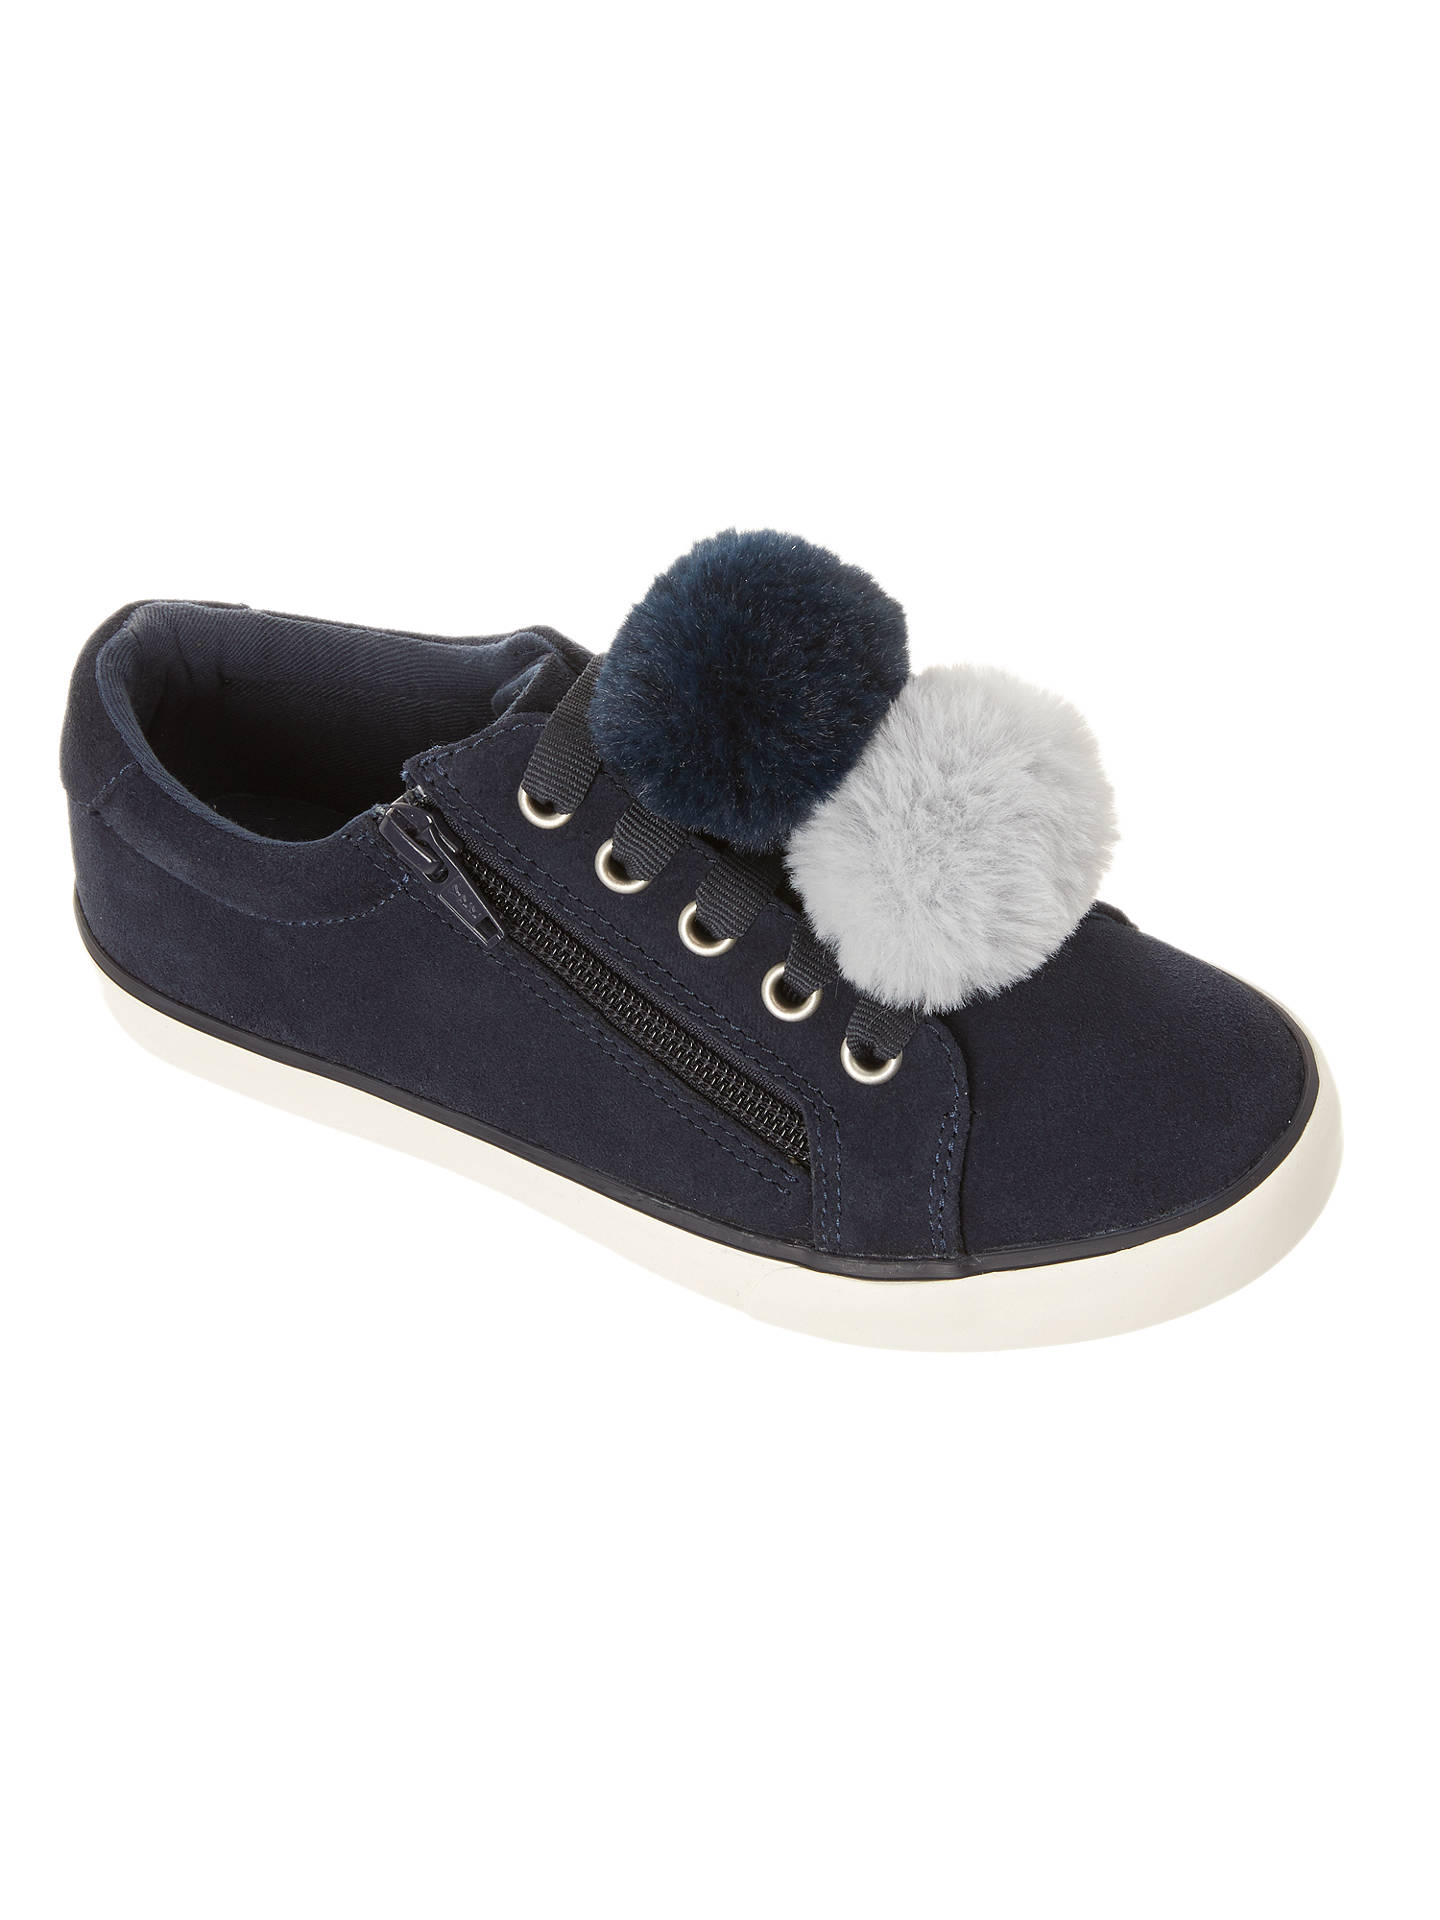 BuyJohn Lewis & Partners Children's Paige Pom Pom Suede Shoes, Navy, 11 Jnr Online at johnlewis.com